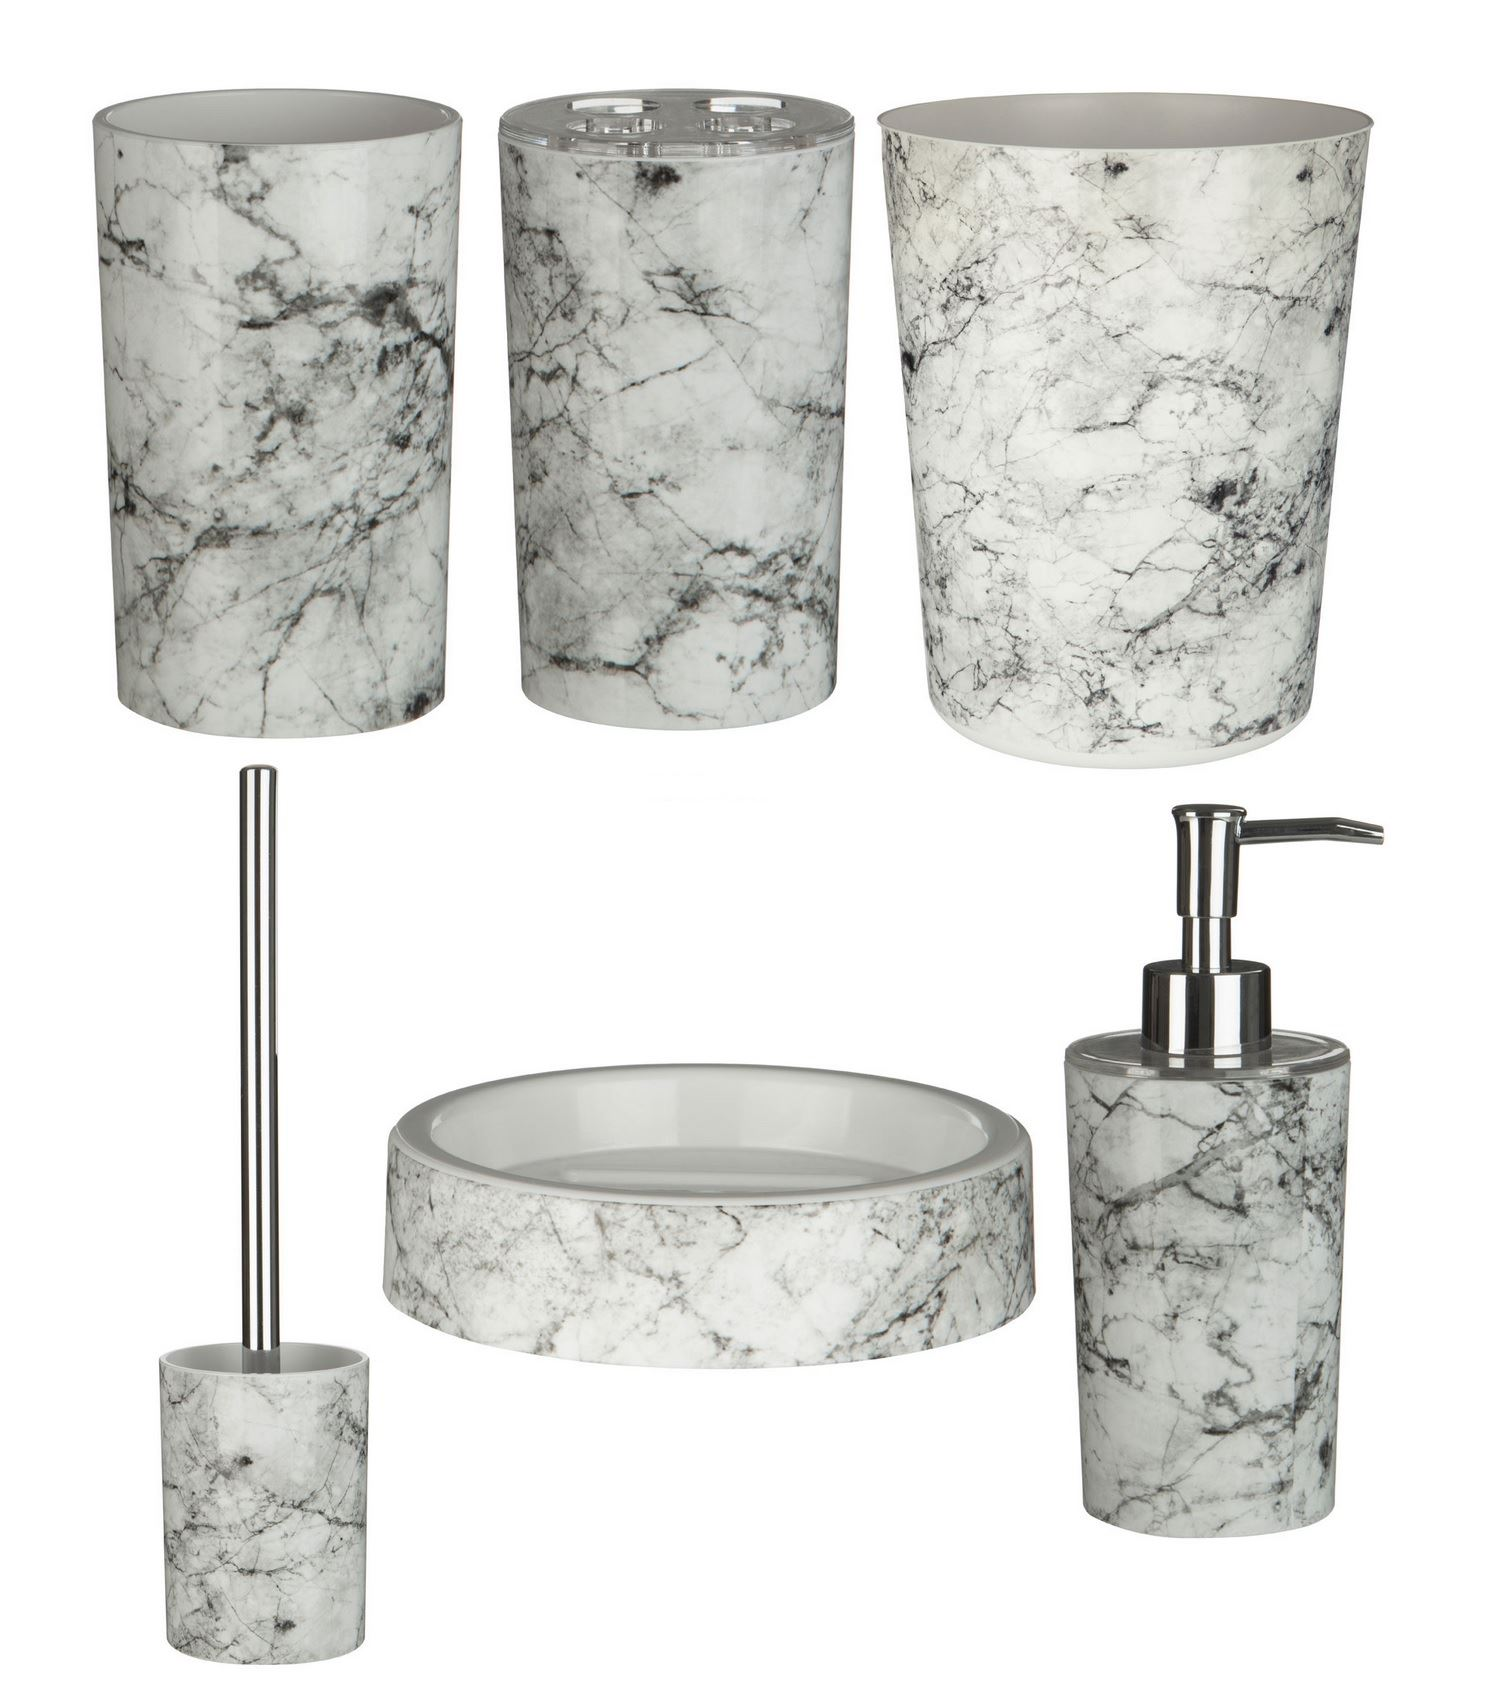 Magasin Salle De Bain Gembloux ~ Rome Bathroom Accessories Set 6pc Marble Effect Abs Plastic Ebay